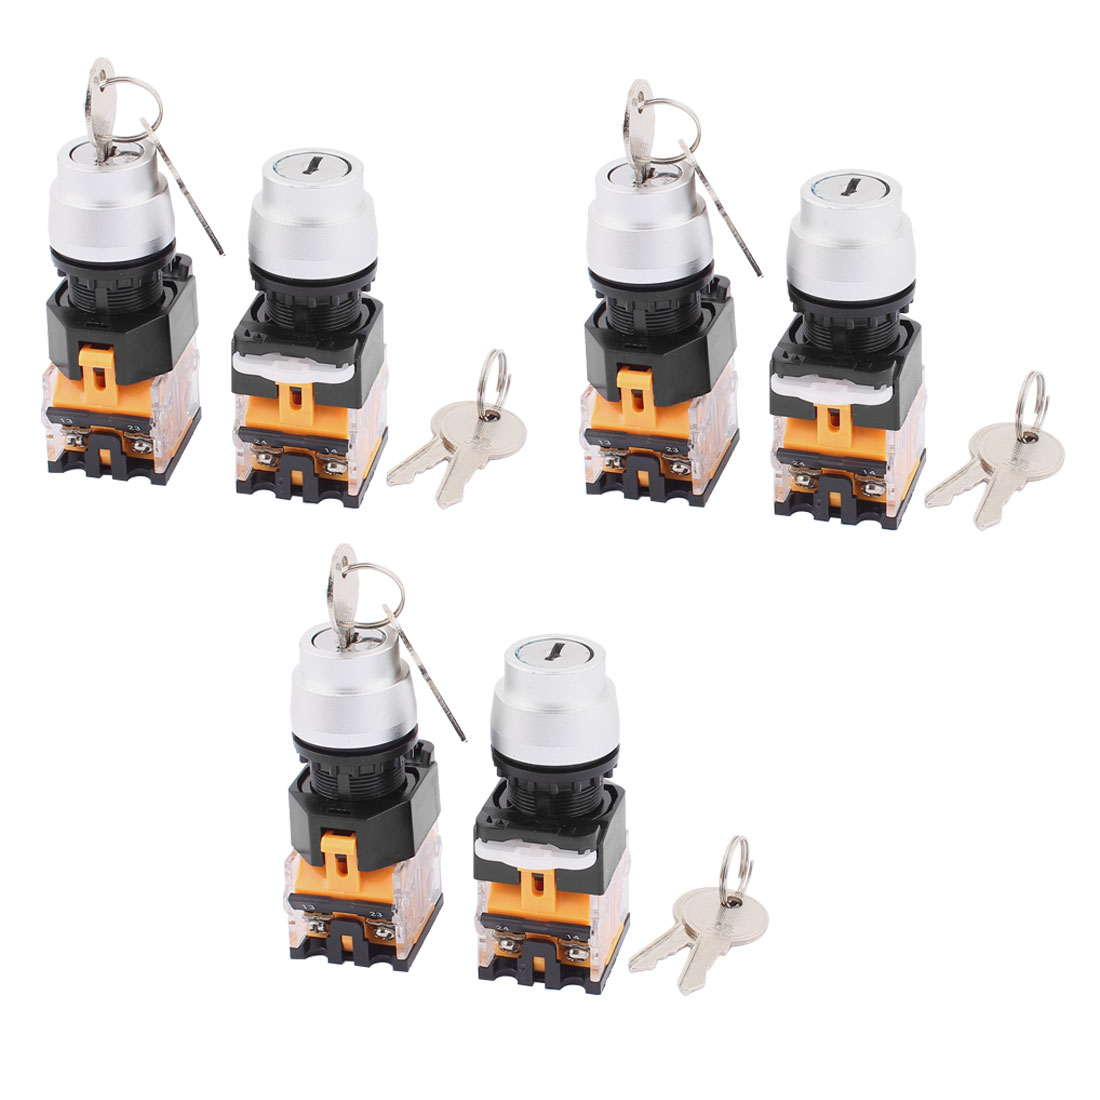 6PCS AC 660V 10A NC NO 3 Position Selector Rotary Switch w Keys